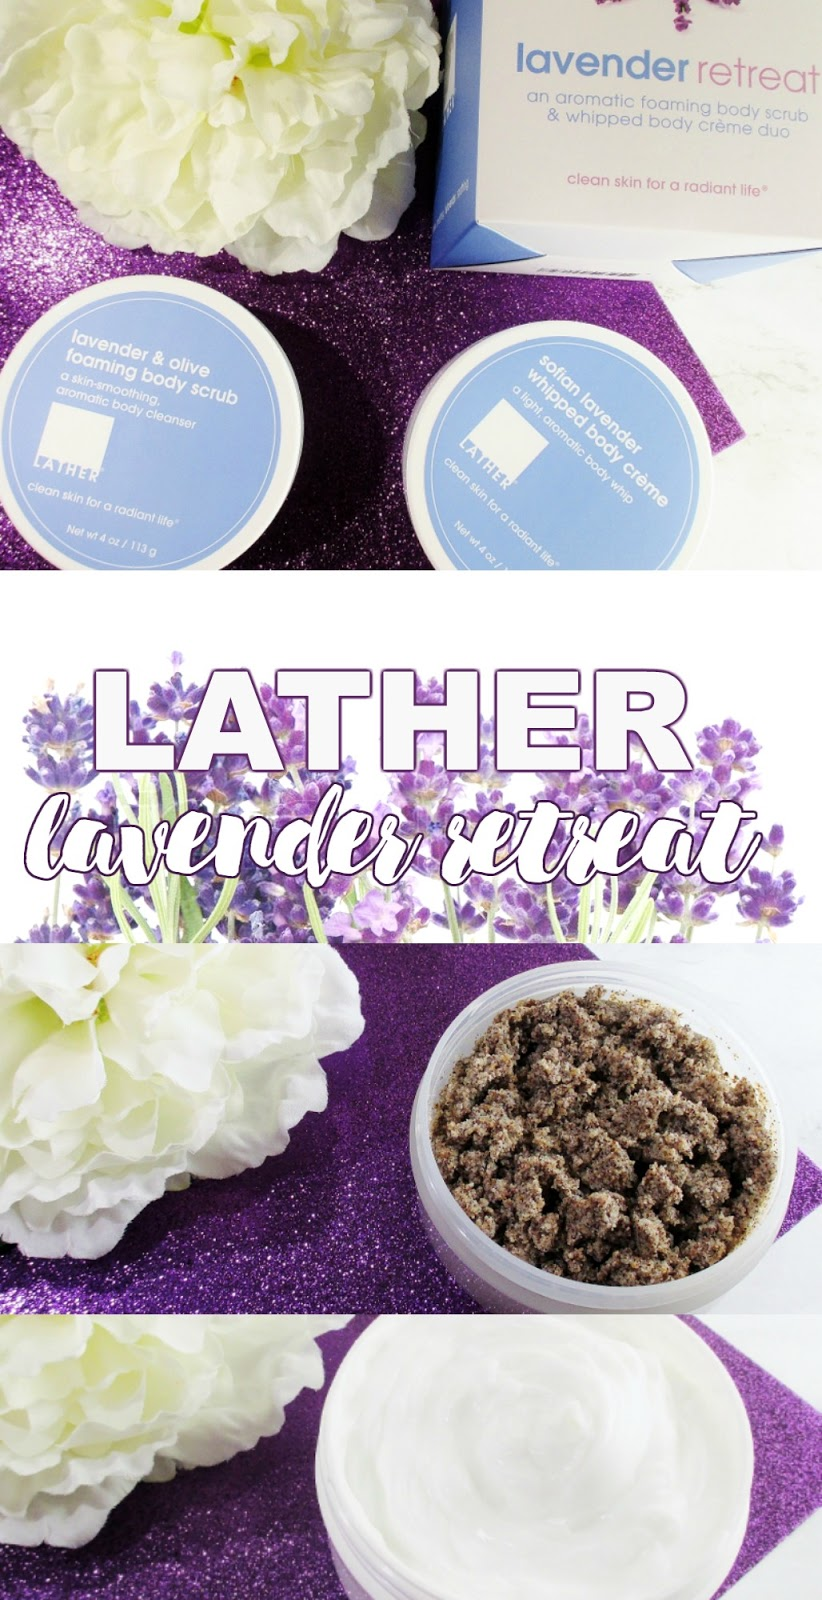 lather-lavender-retreat-4